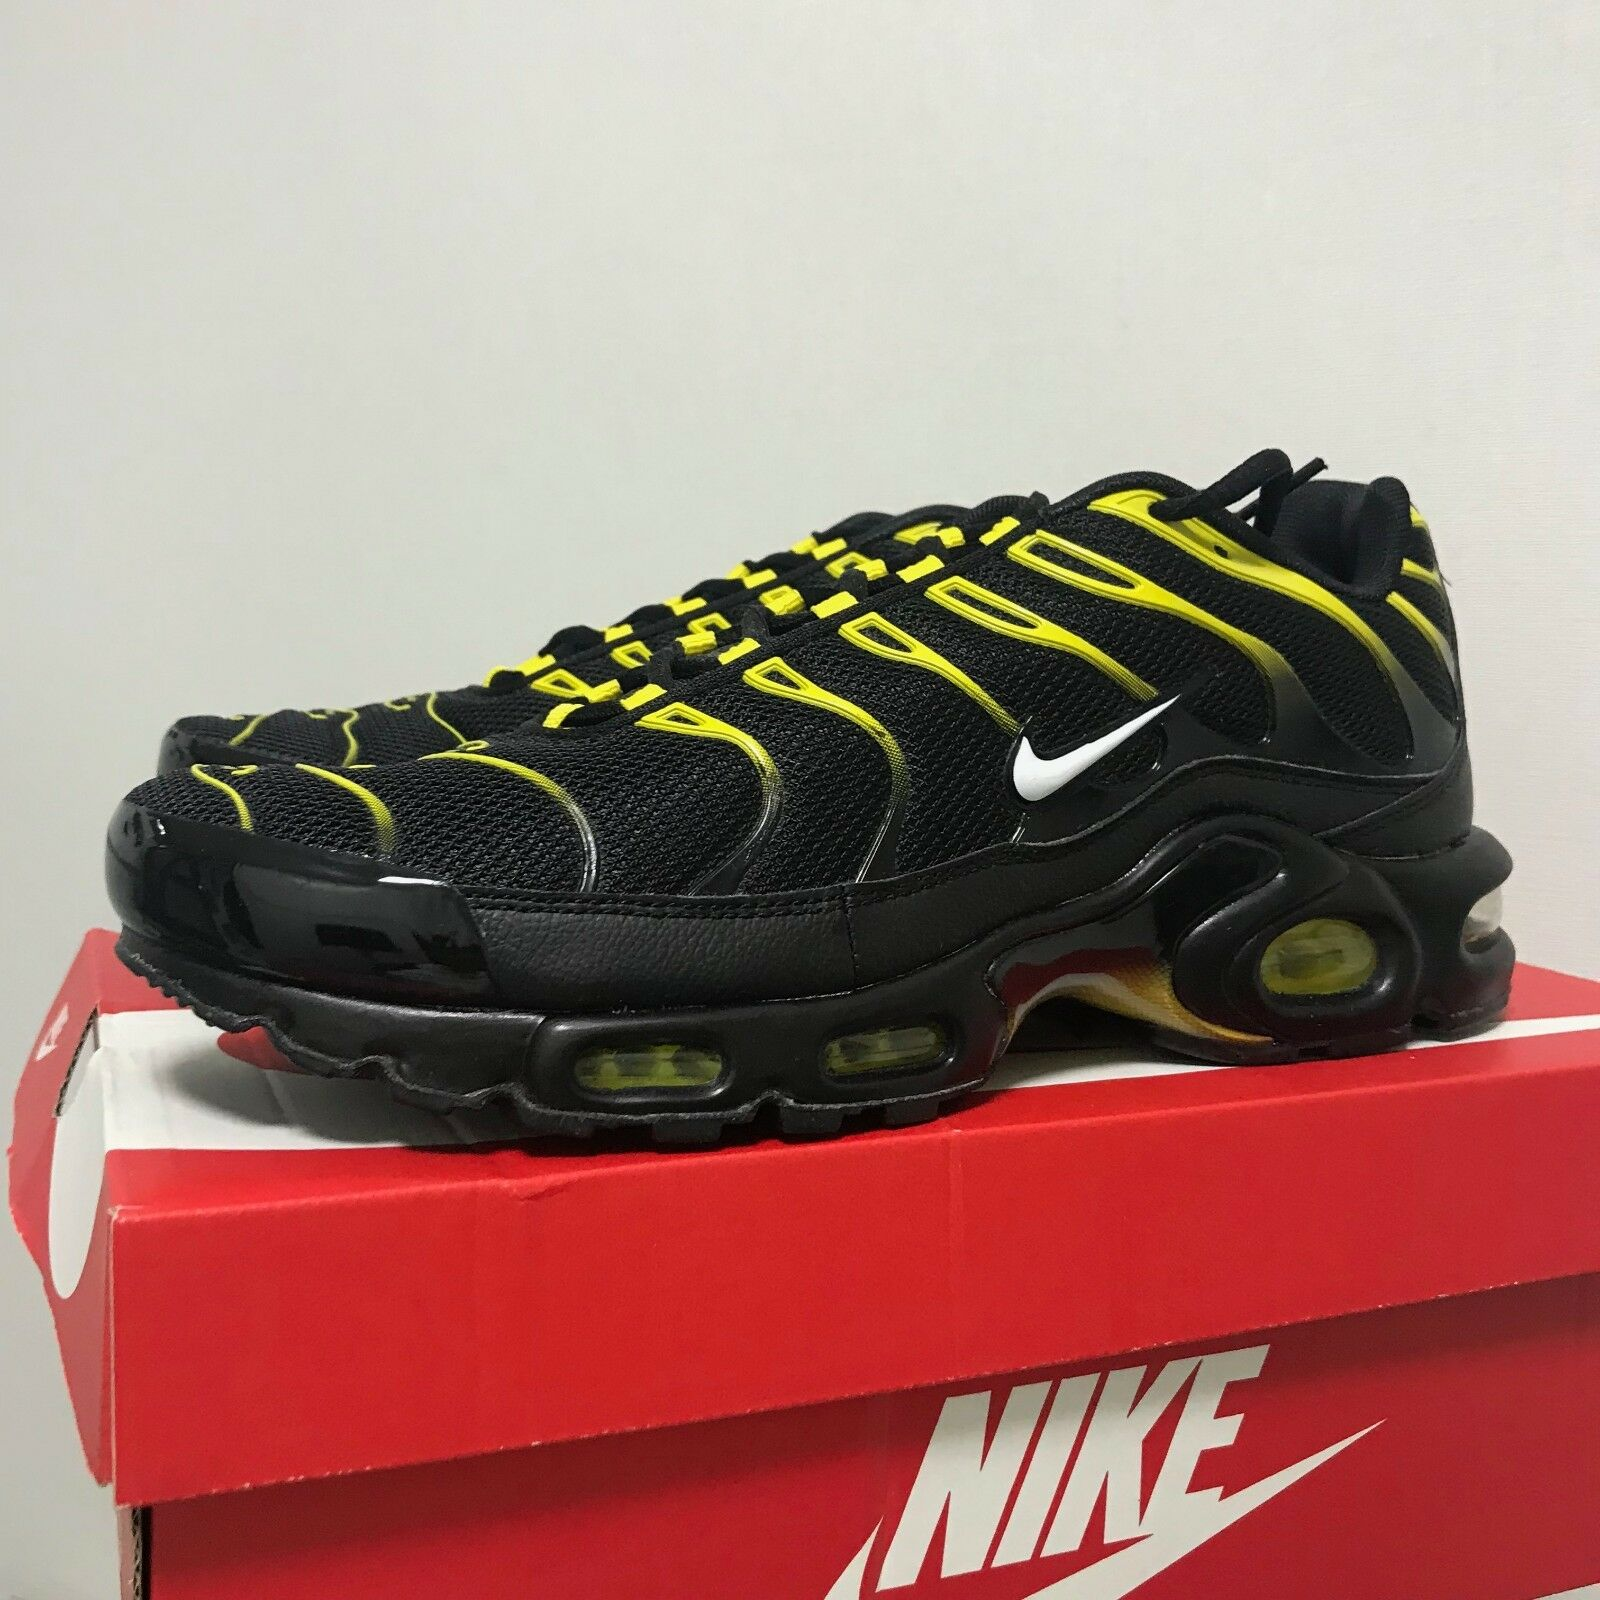 separation shoes 76cfd e85a3 Nike Air Max Plus 1Tn Sneakers Shoes Black Yellow 852630-020 Sz5-13  Limited. black. WHY US